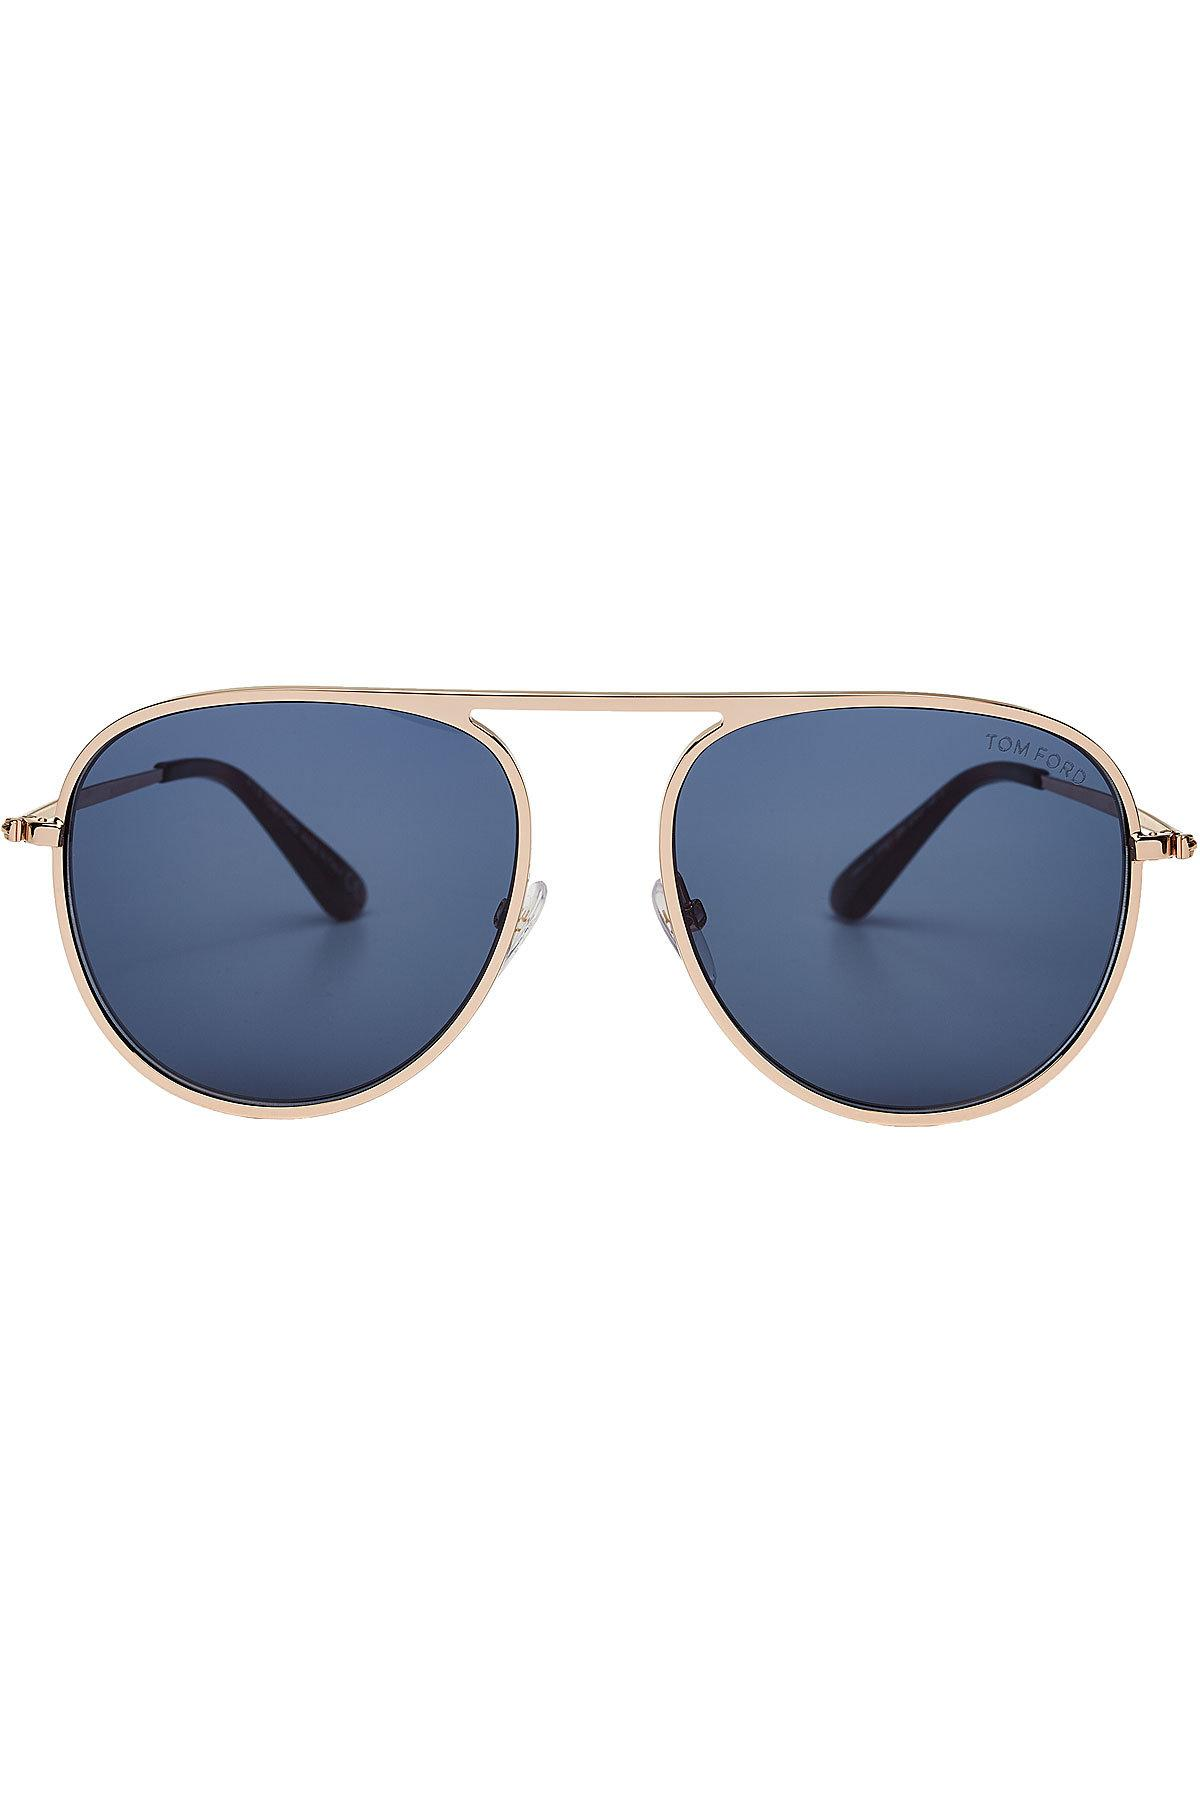 Tom Ford Round Aviator Sunglasses In Silver